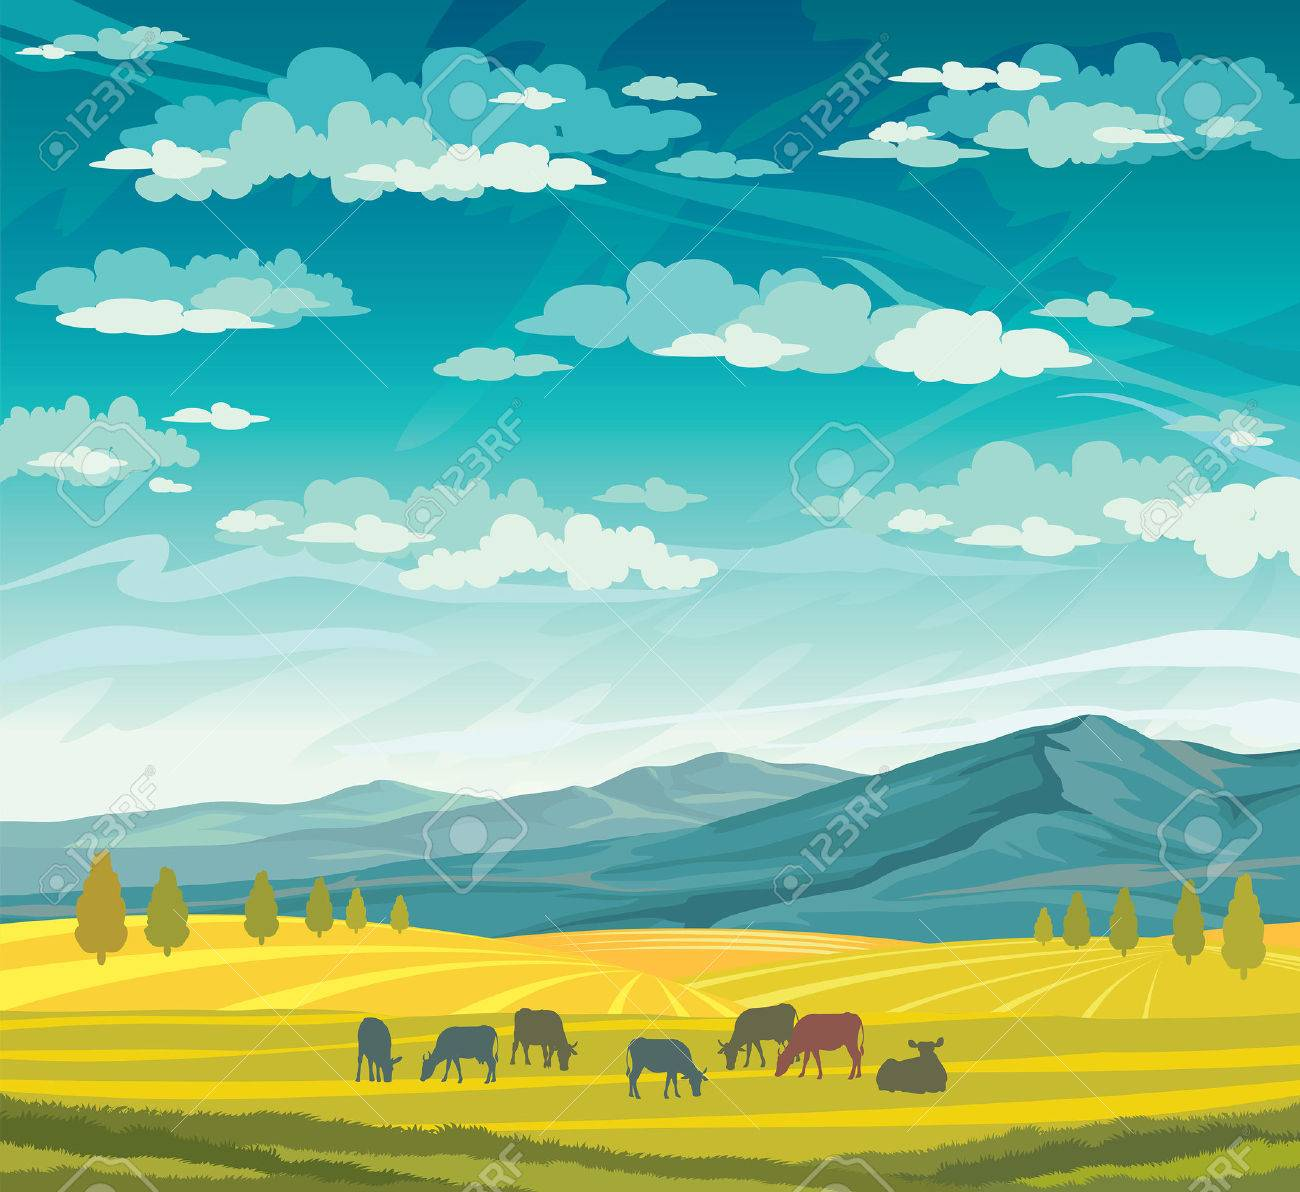 Herd of cows in green meadow on a blue cloudy sky. Vector of rural summer landscape. - 40934155